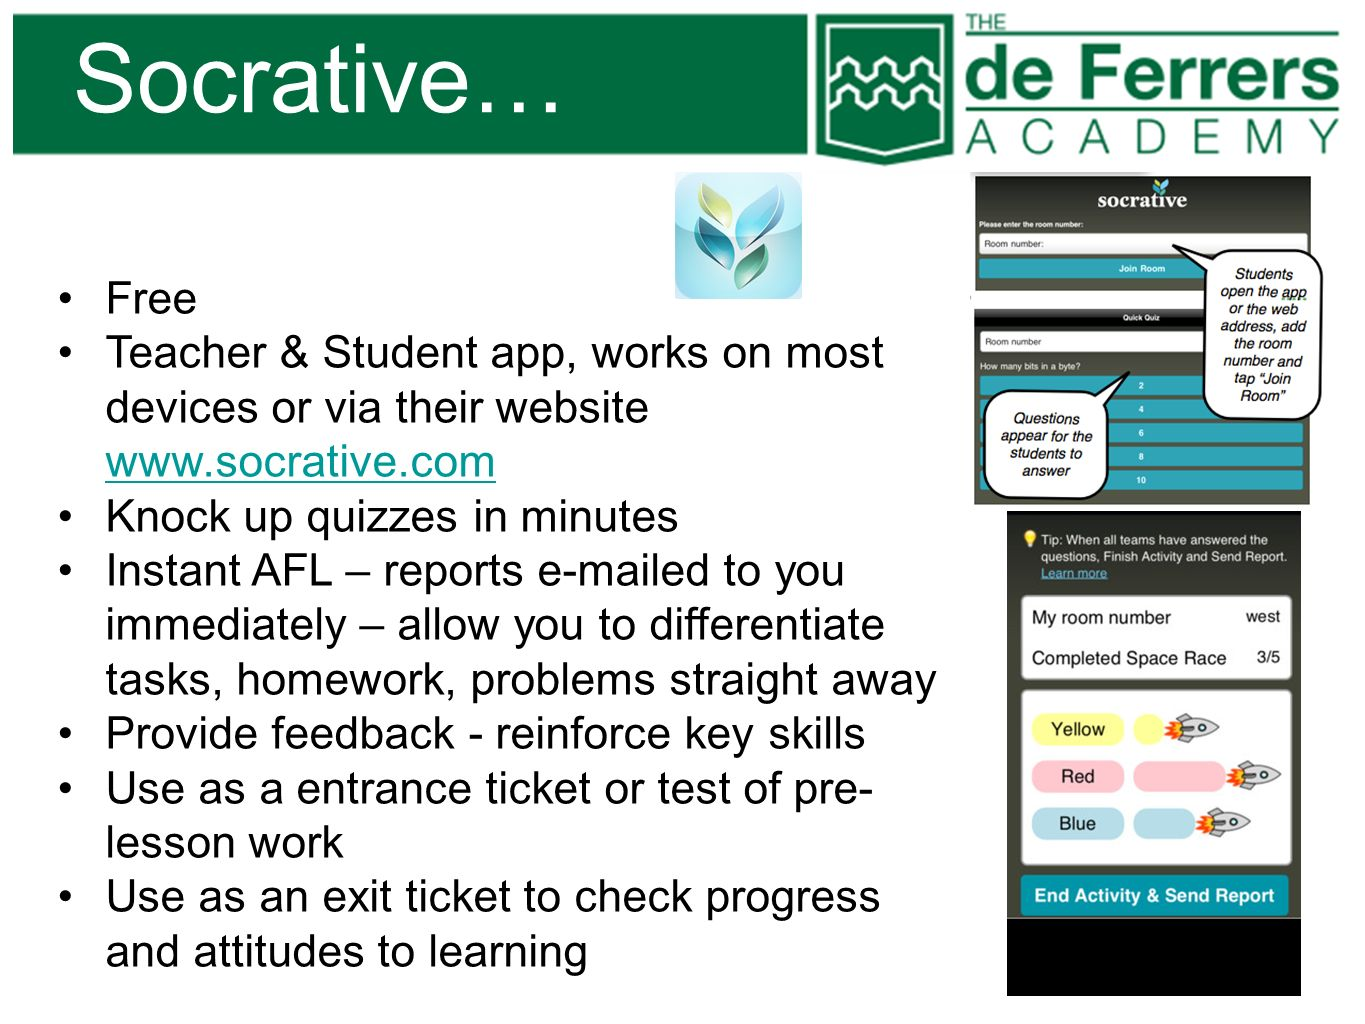 Socrative…Free. Teacher & Student app, works on most devices or via their website www.socrative.com.